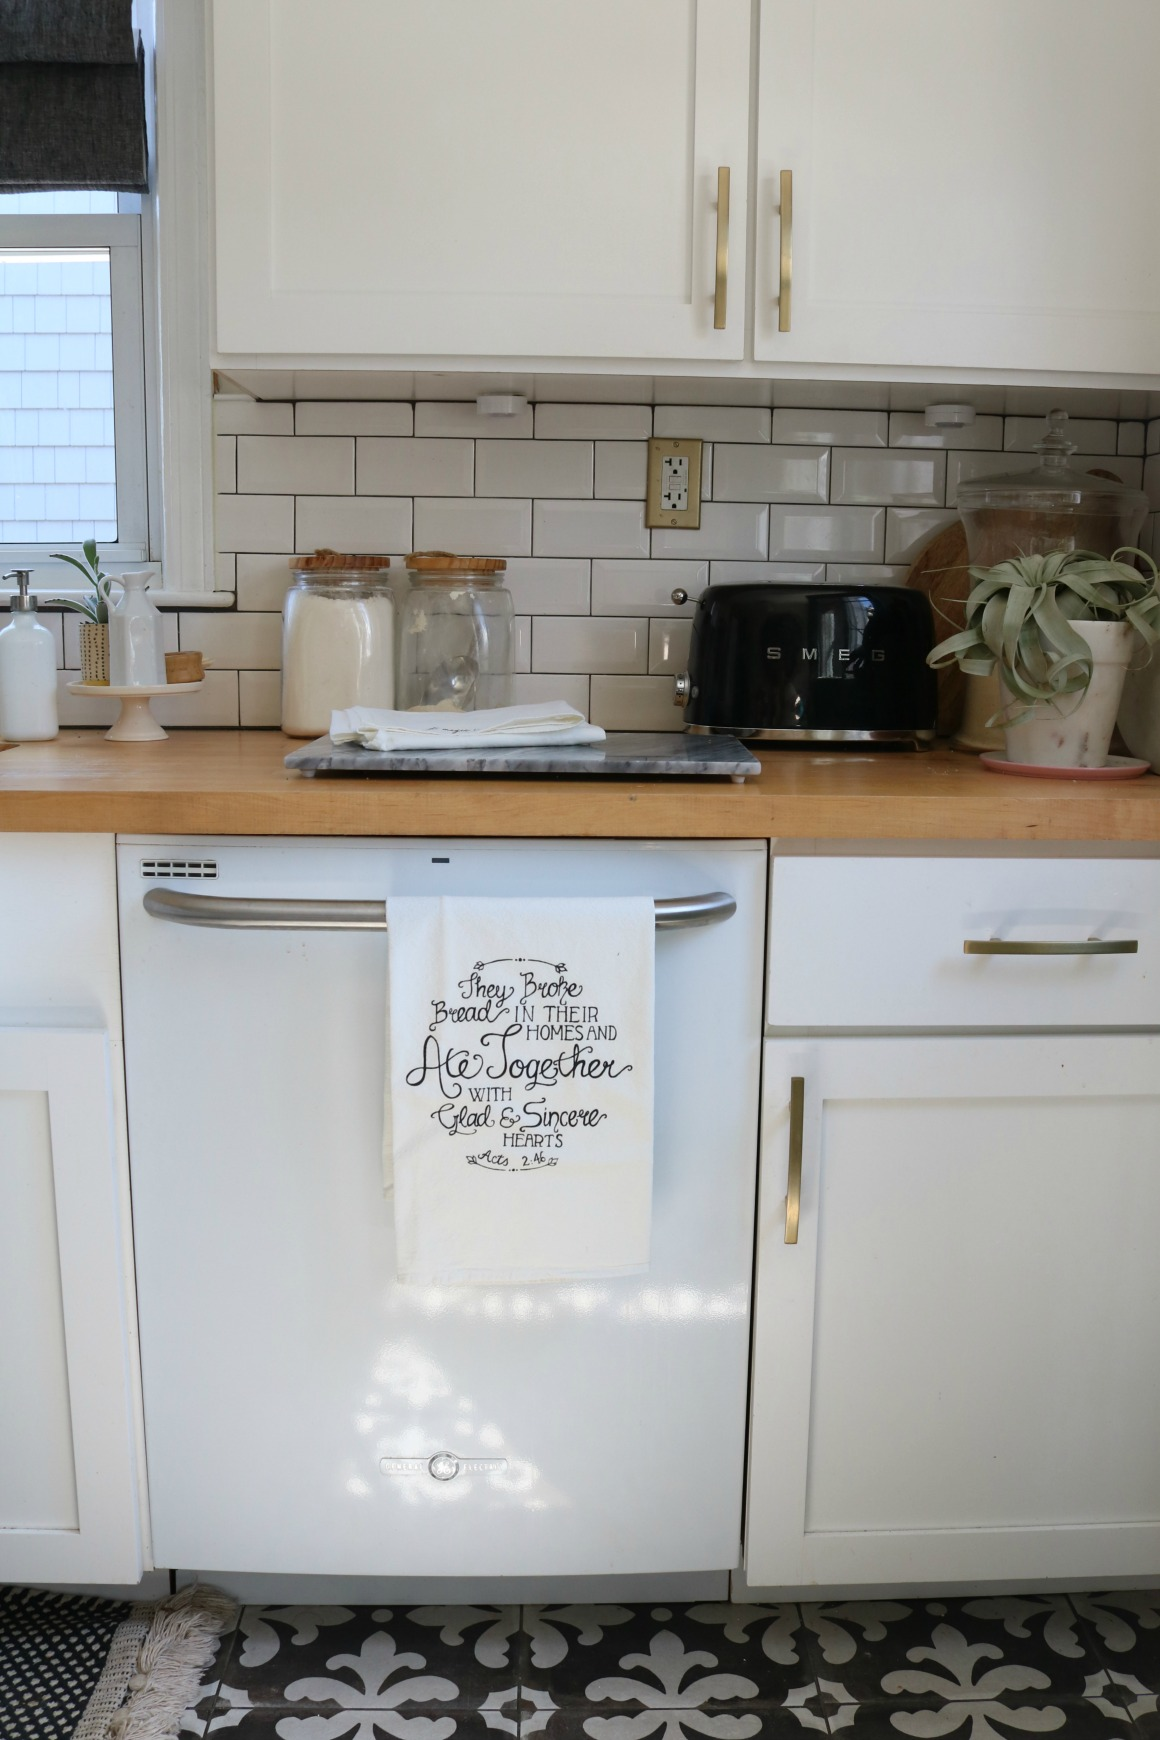 Mothers Day Gift Ideas- They Broke Bread in their Homes Dish Towel